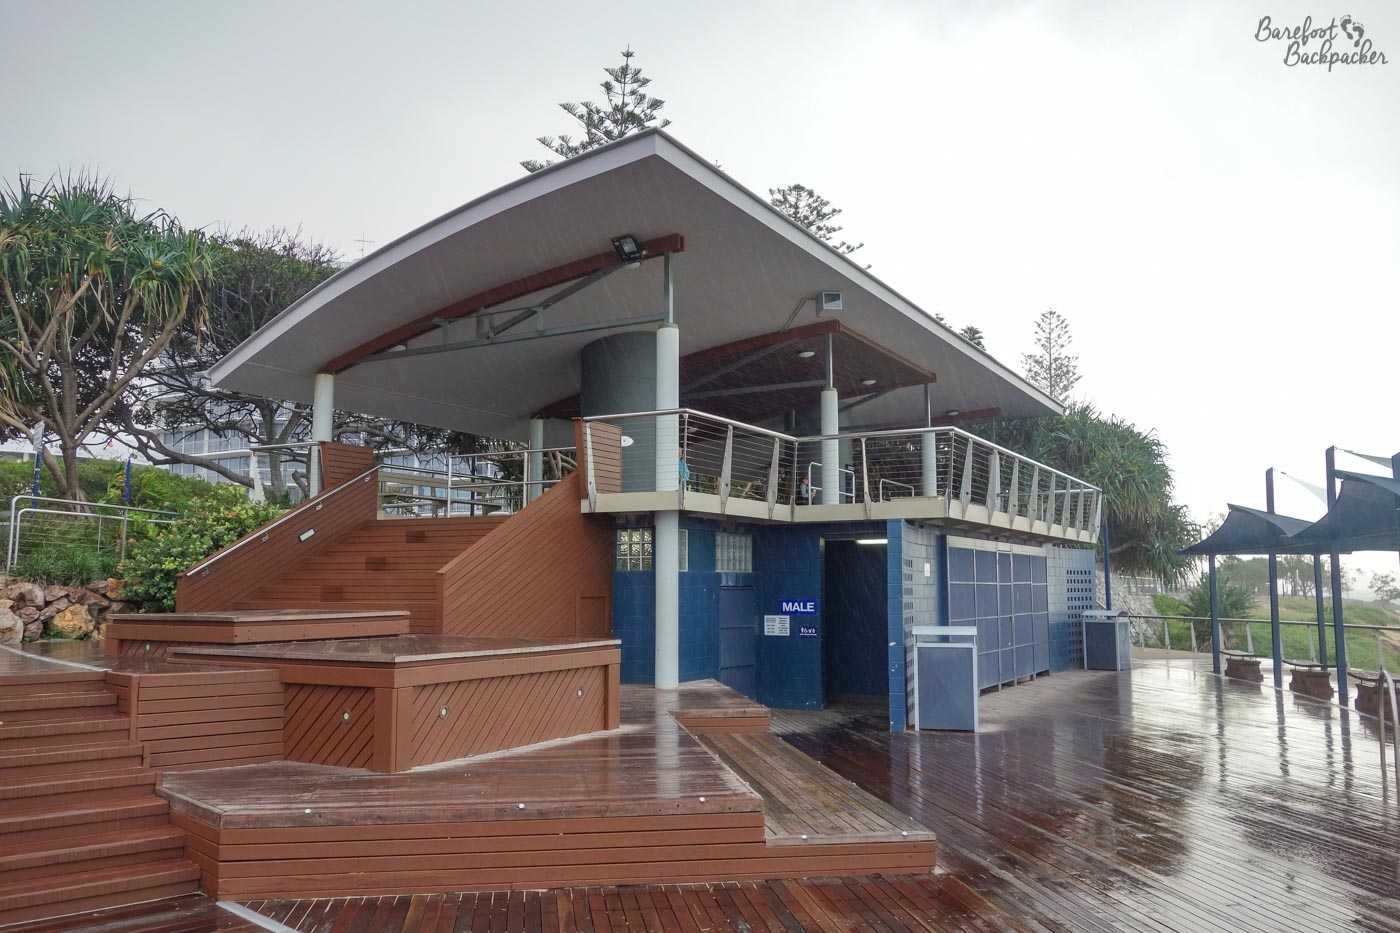 Frontal view of the seafront toilets, the 'loo with a view', in the rain. It's built on a couple of levels, with wooden decking leading up from the toilets themselves to the lookout section above, which is underneath a canopy. It looks a little like a modern bus station, if we're being honest.